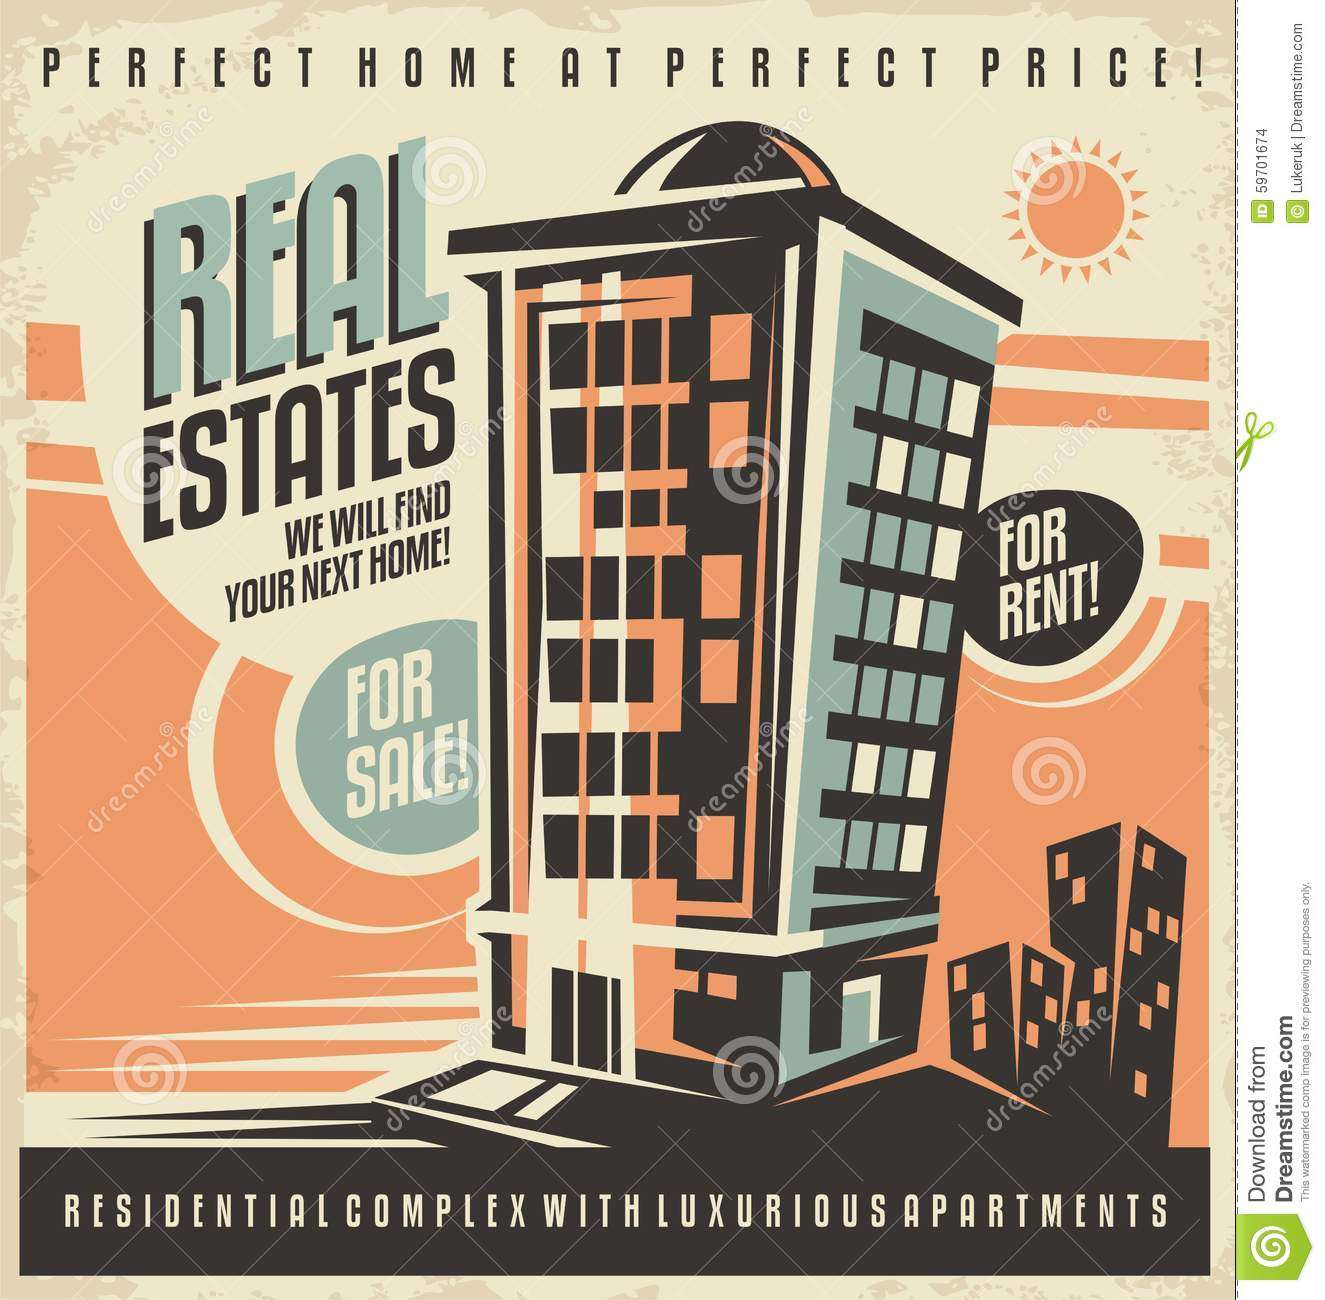 Real estates vintage ad design concept stock vector for Poster prints for sale